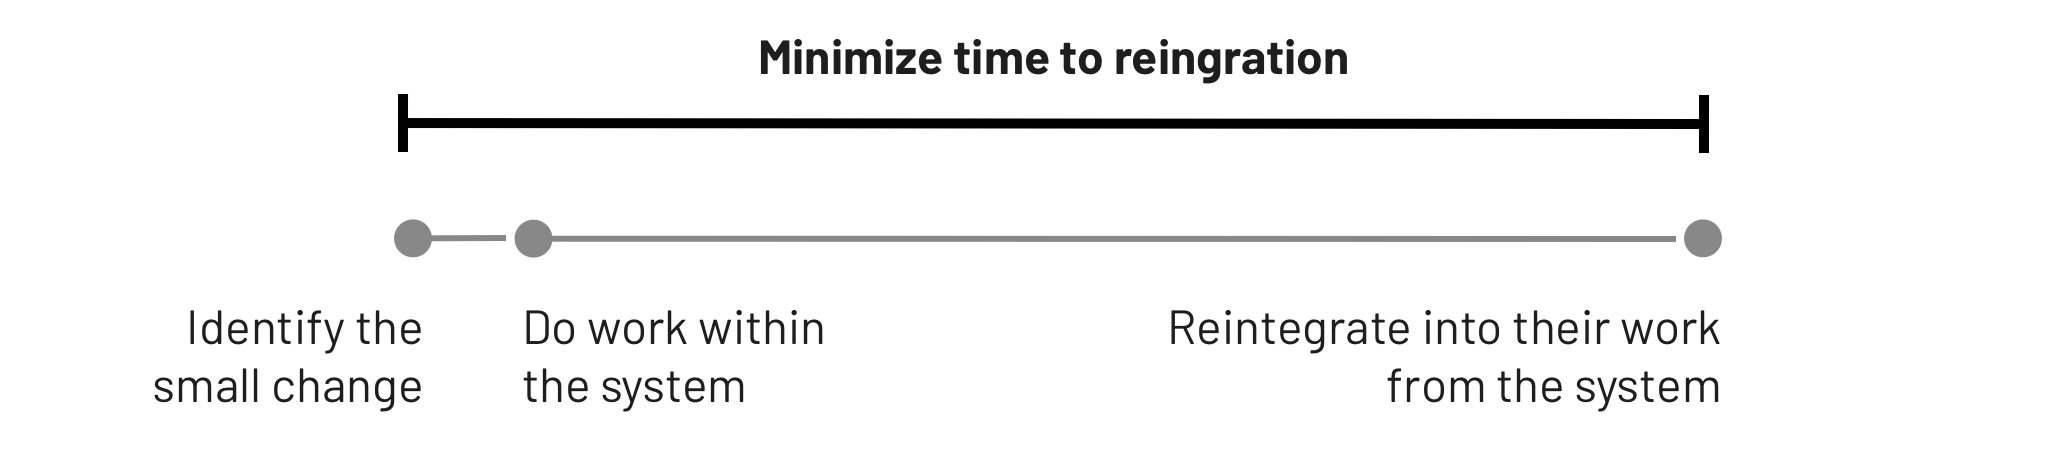 Diagram of timeline from identification to reintegration.